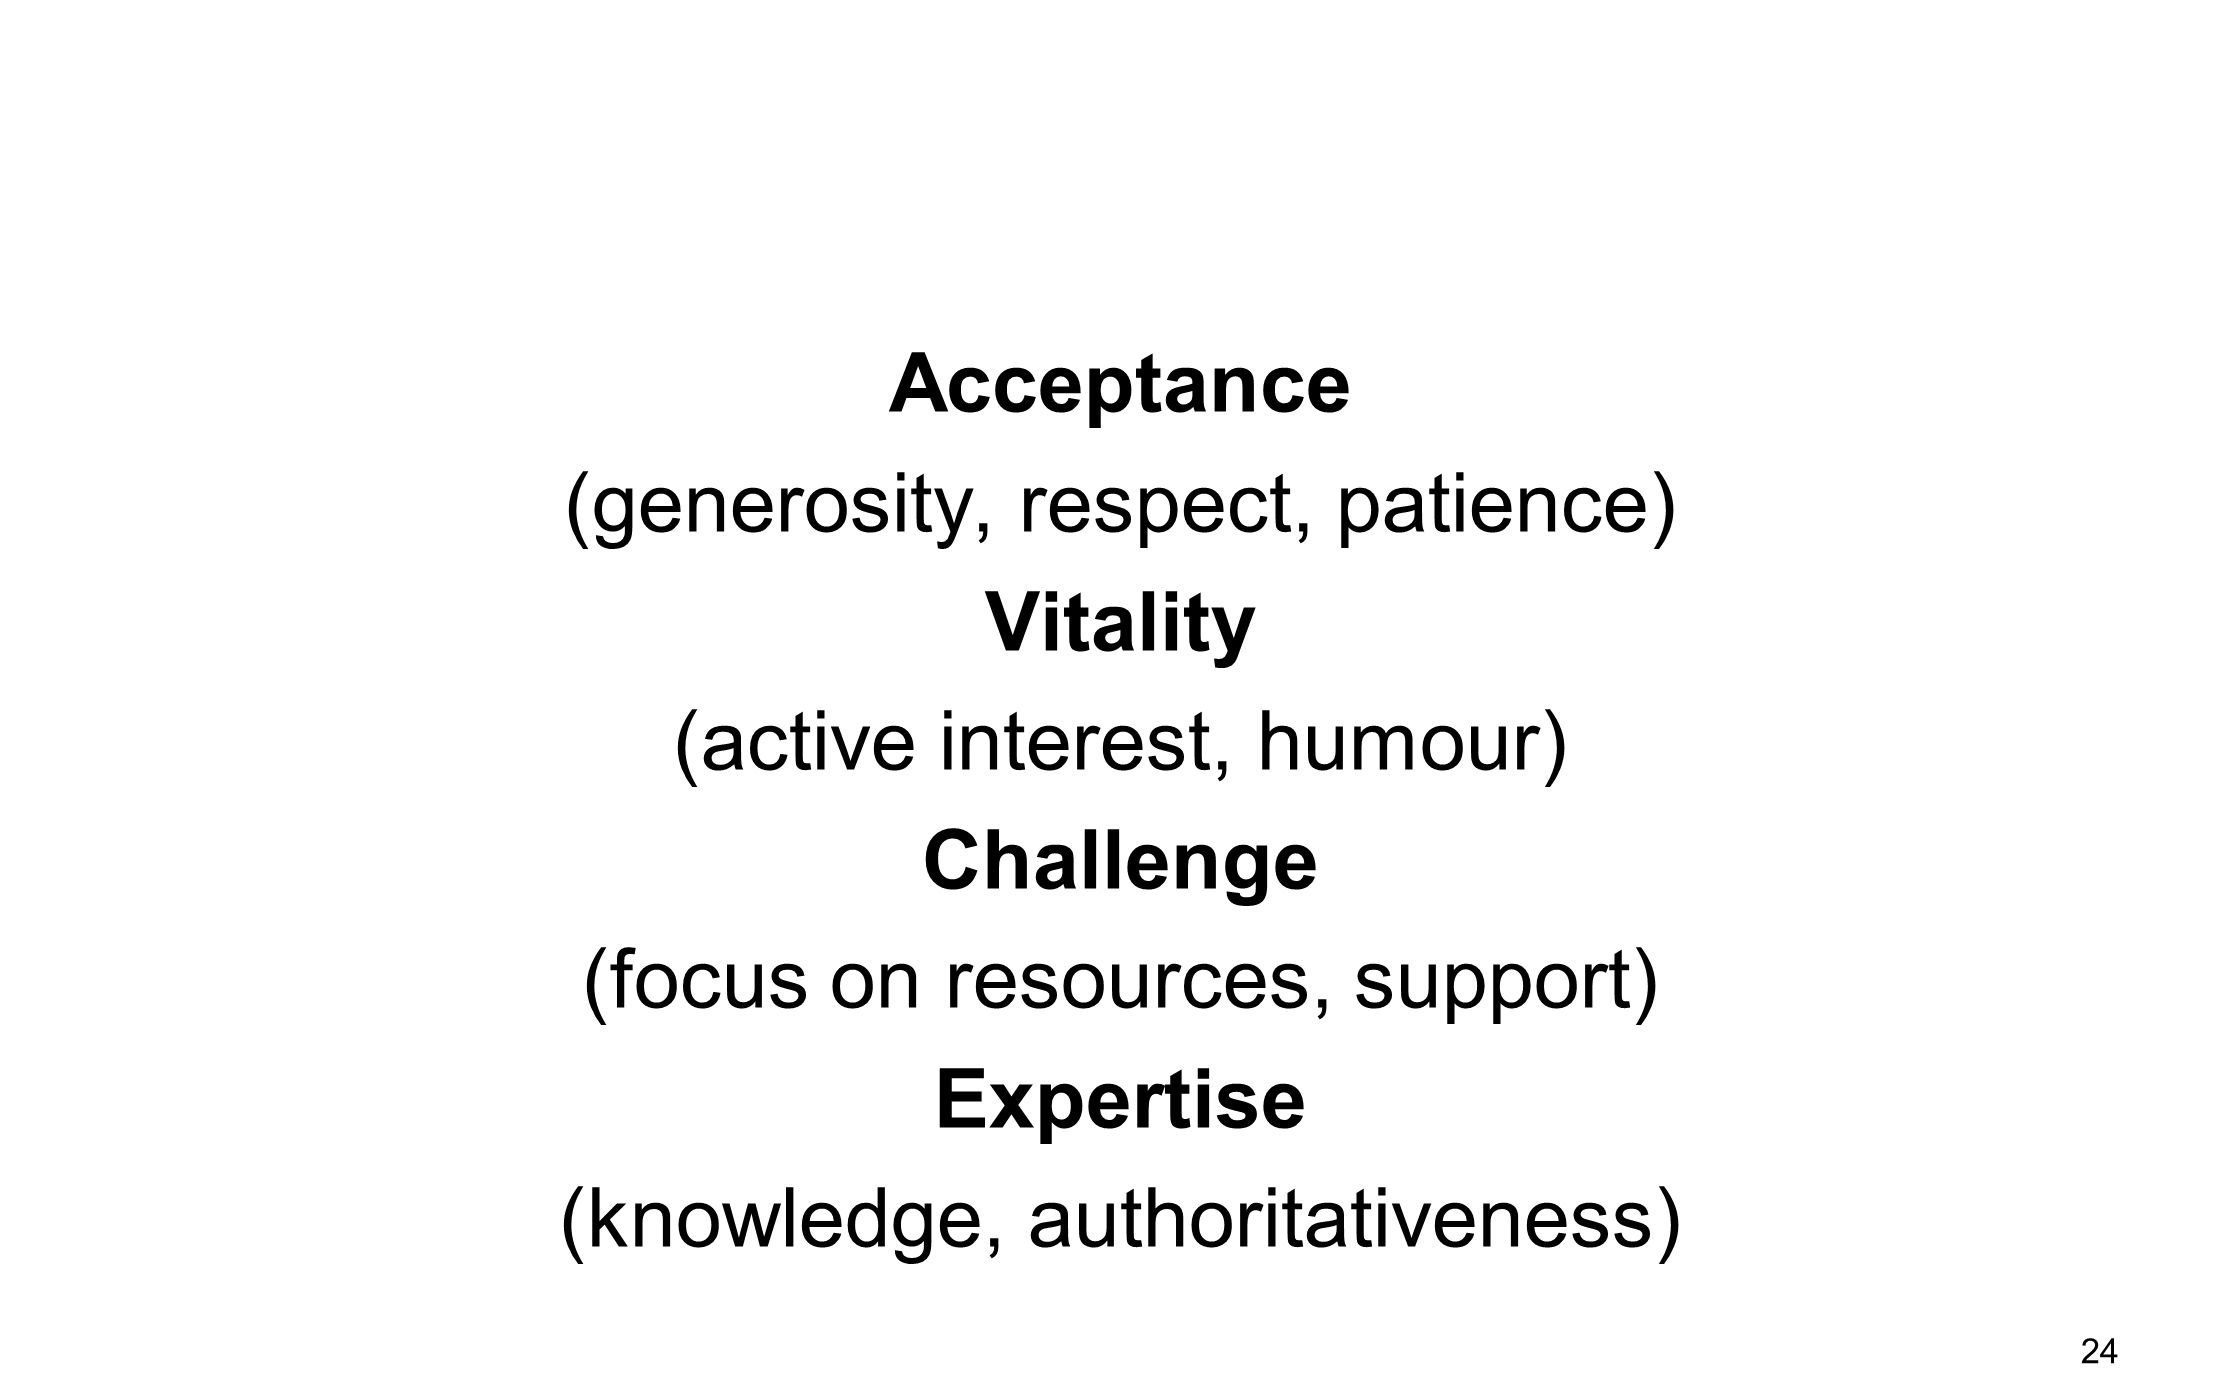 Acceptance (generosity, respect, patience) Vitality (active interest, humour) Challenge (focus on resources, support) Expertise (knowledge, authoritativeness)